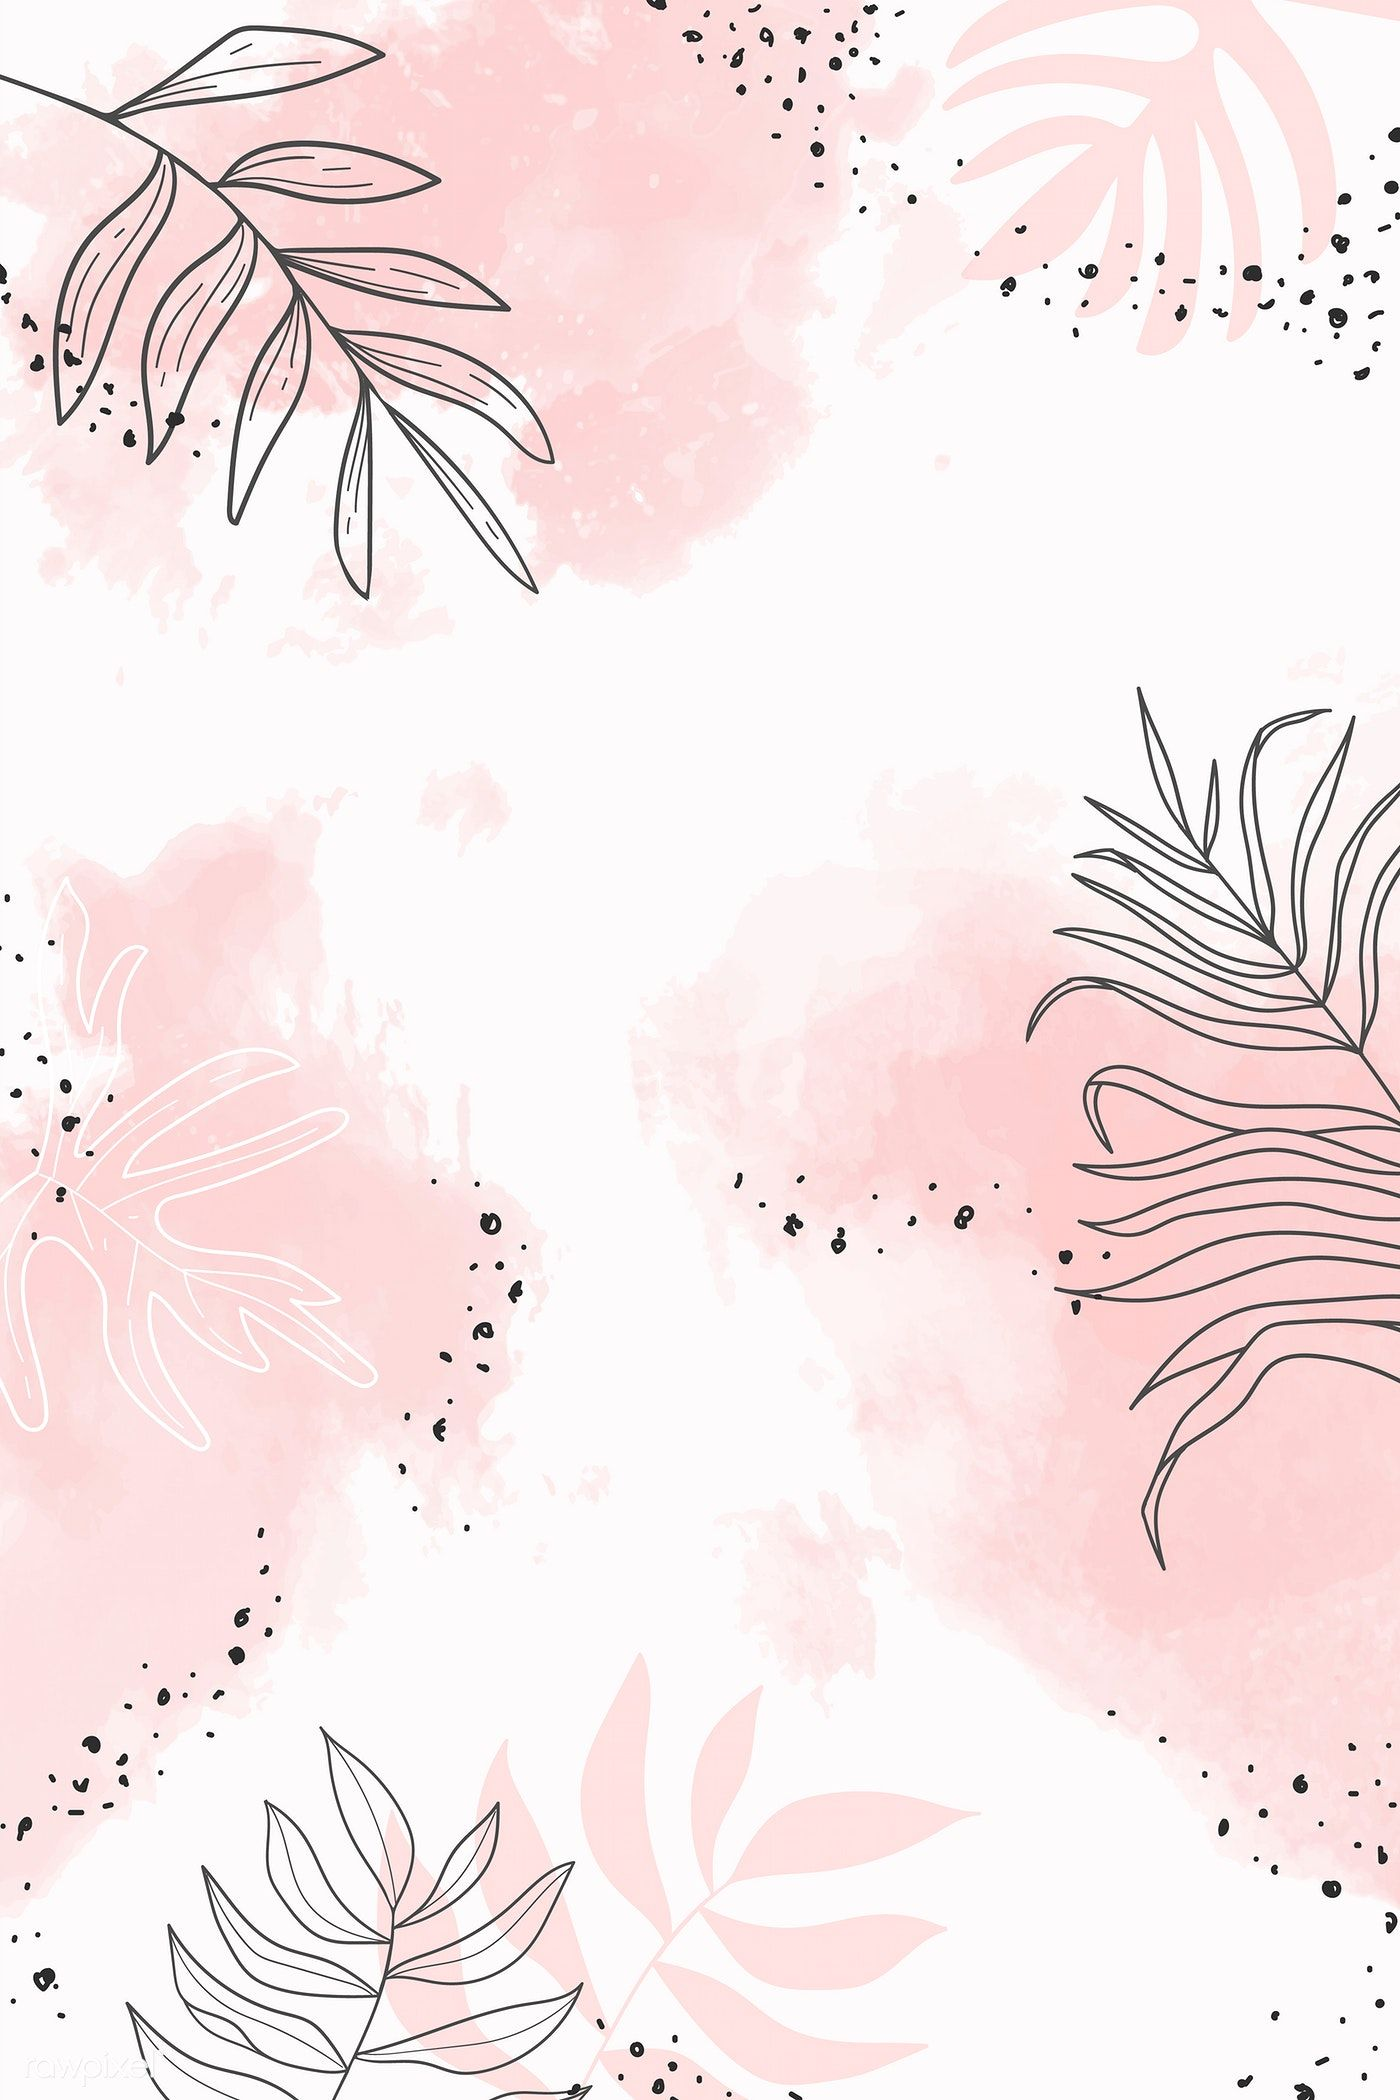 Pink Leafy Watercolor Background Vector Premium Image By Rawpixel Com Aum Phone Wallpaper Pink Watercolor Wallpaper Phone Phone Wallpaper Images